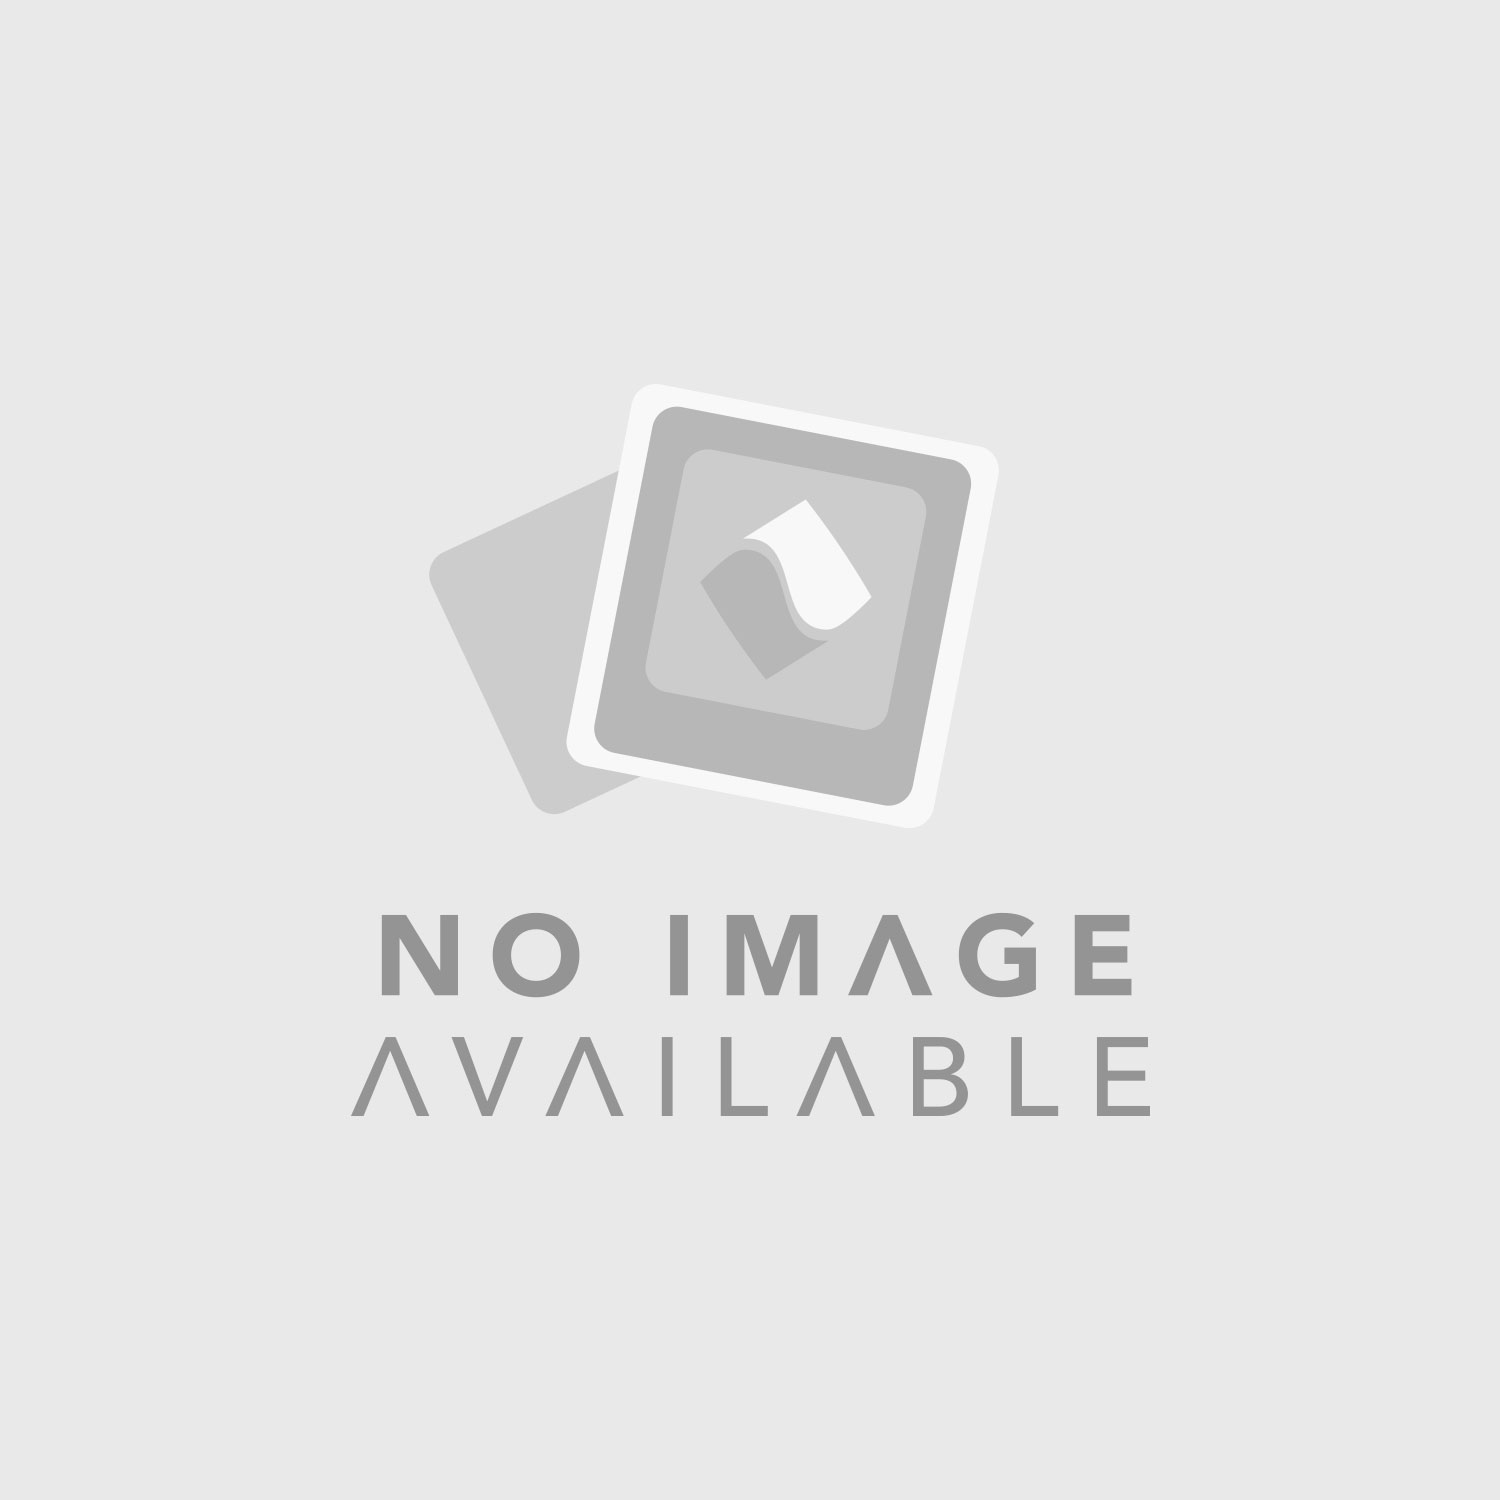 "Littlite LA-12PA-LED Gooseneck LED Lectern Light without Power Supply (12"")"